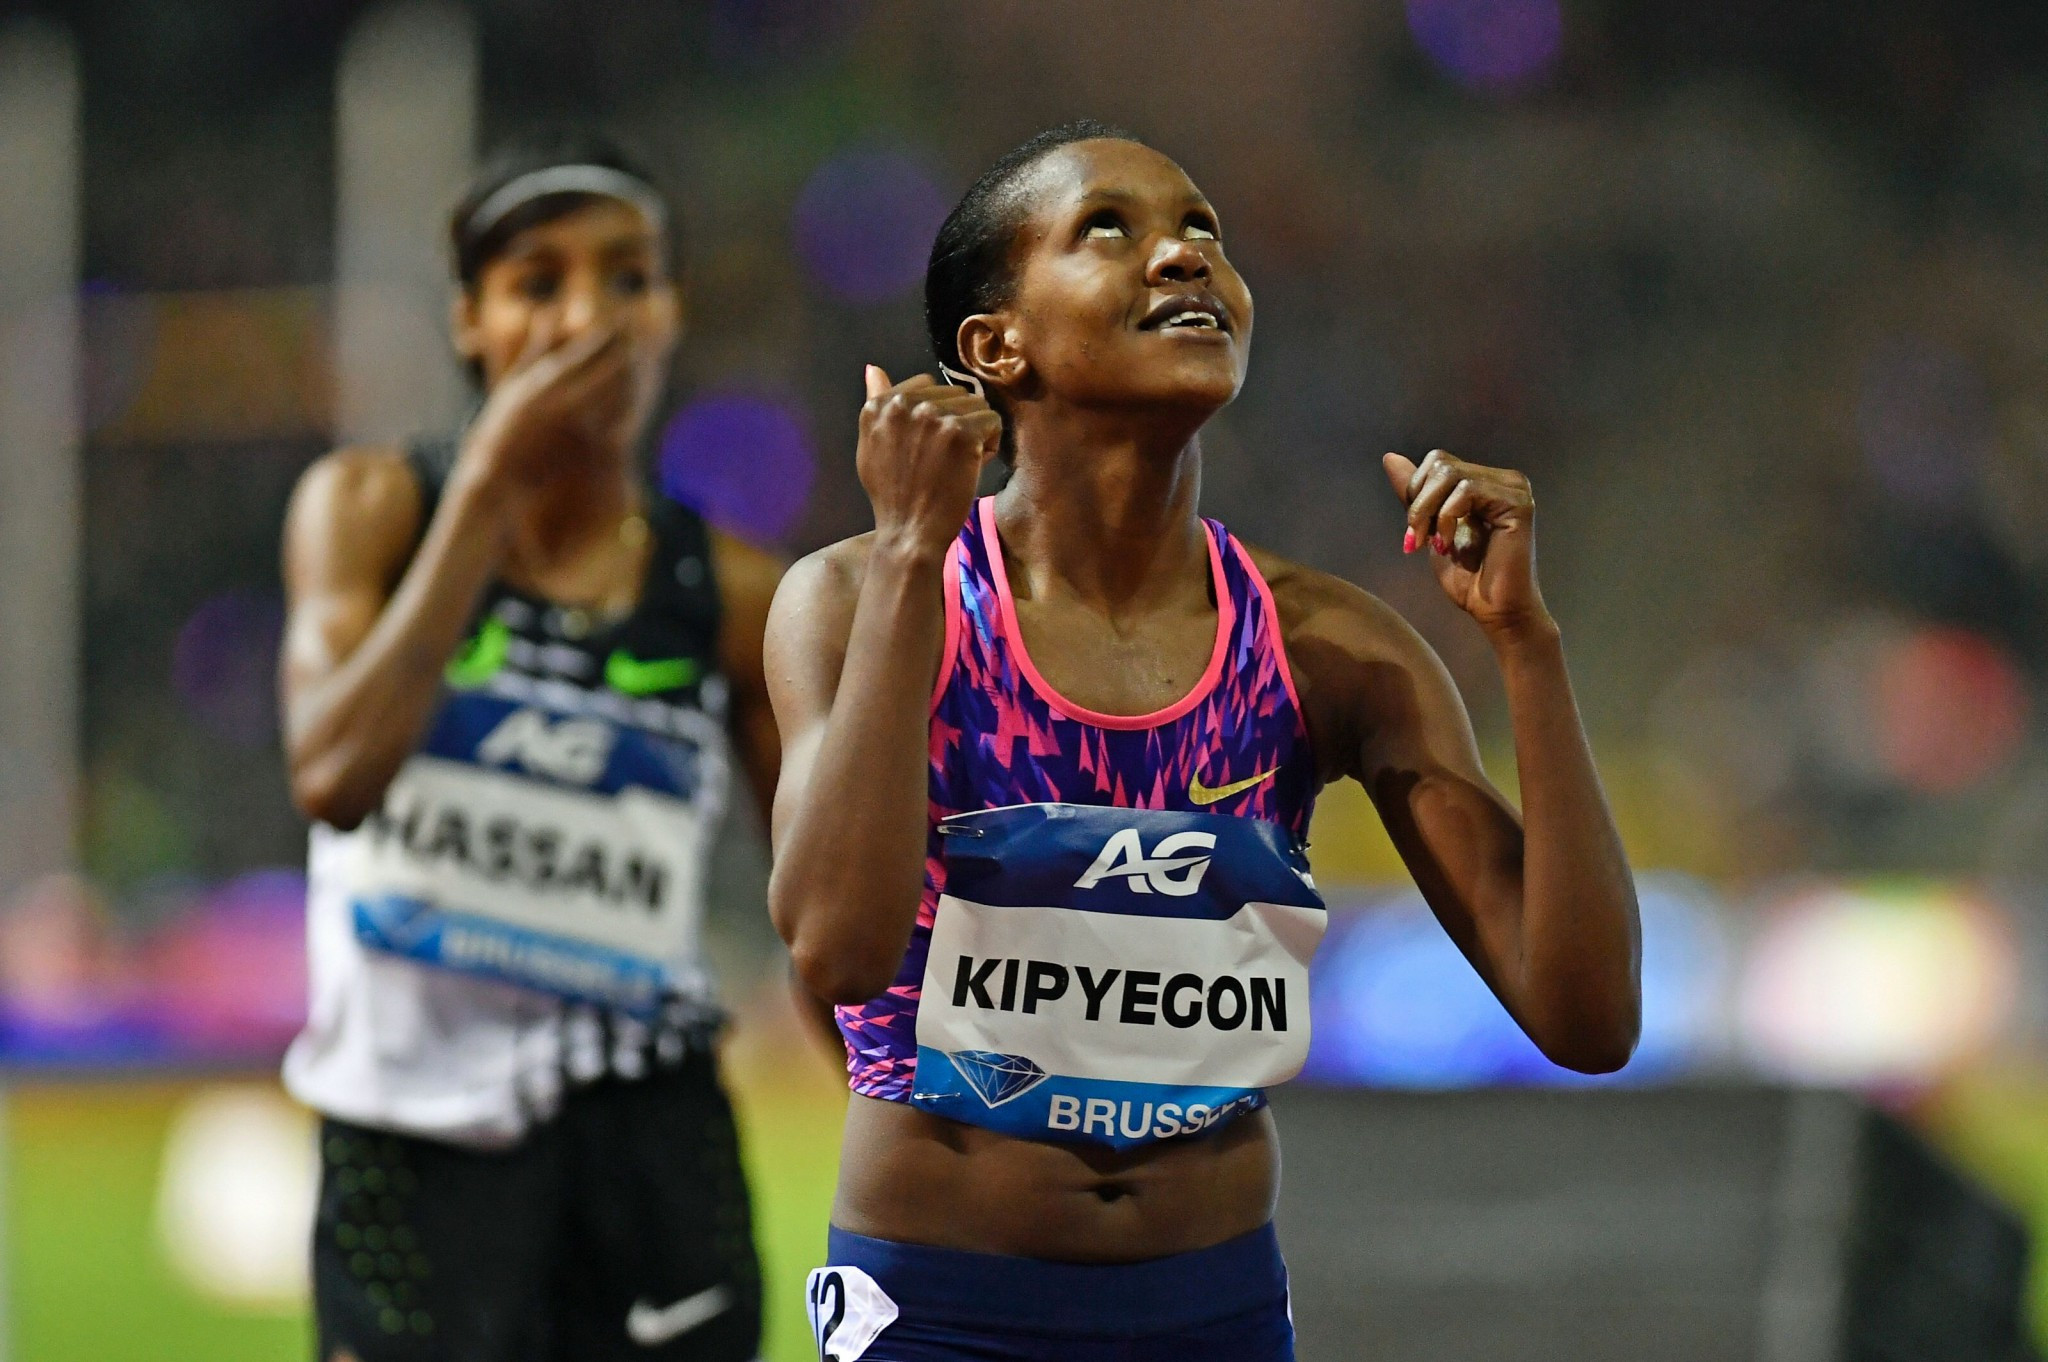 Kenya's world 1,500m champion Faith Kipyegon celebrates a hard-fought victory over Sifan Hassan in the Brussels IAAF Diamond League final ©Getty Images